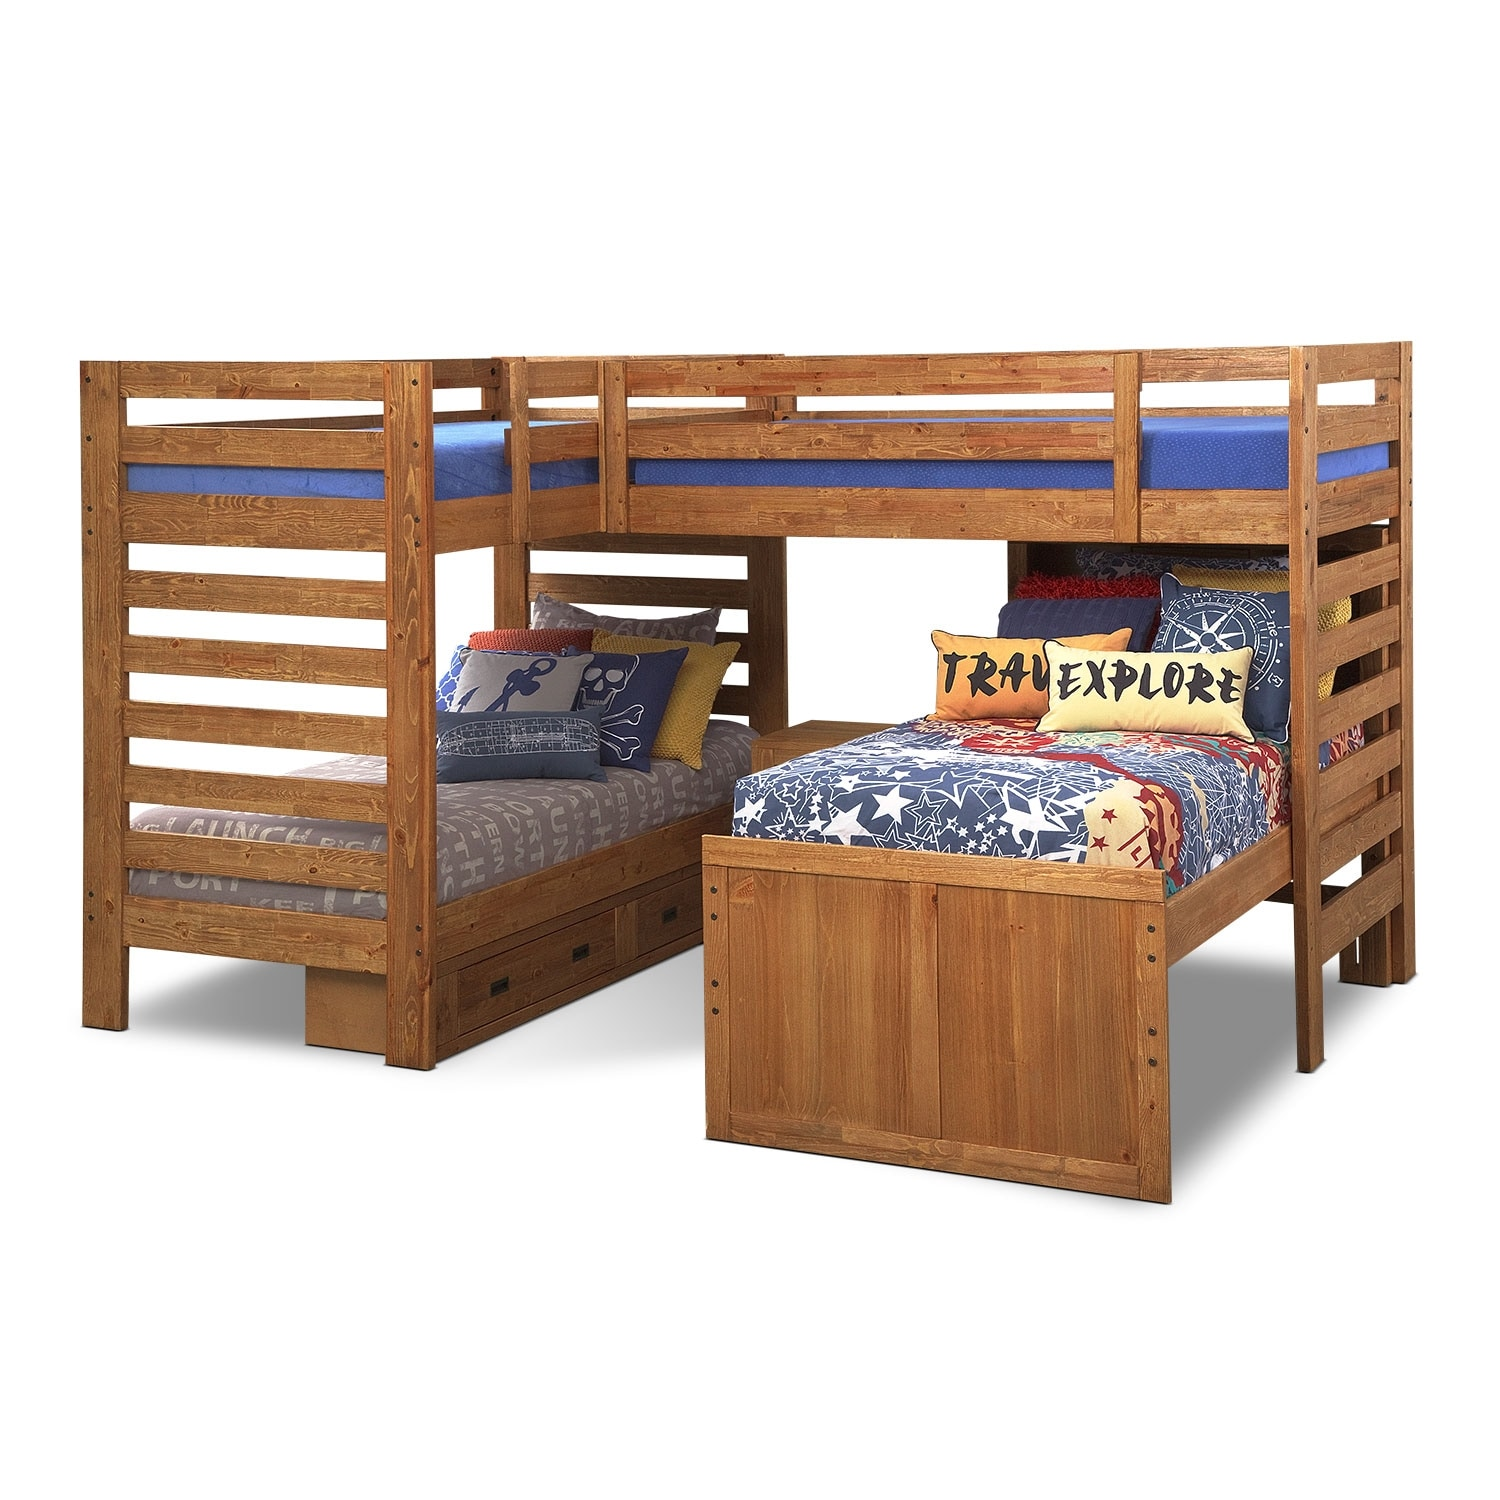 Accent and Occasional Furniture - Traveler Twin Bedding Set